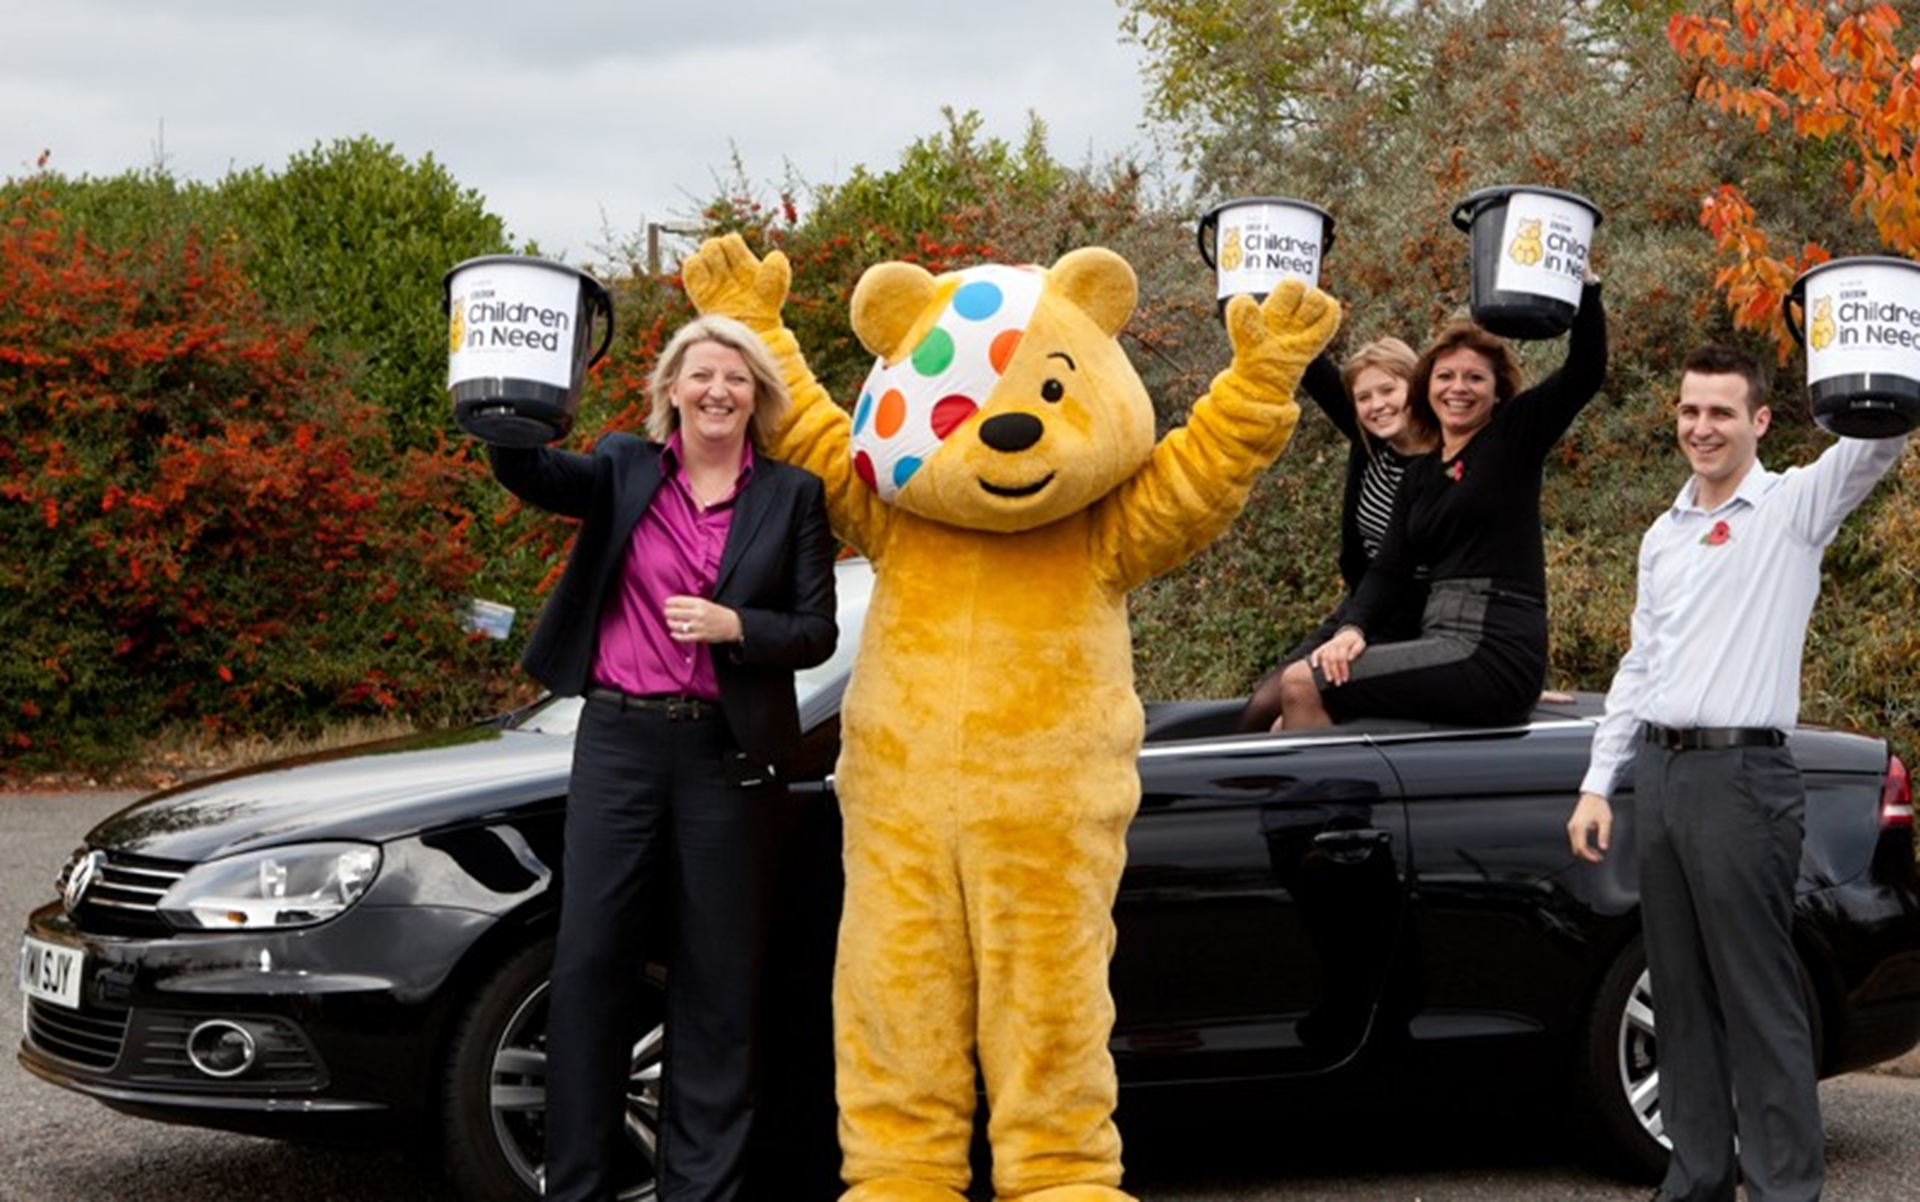 Volkswagen Children in Need